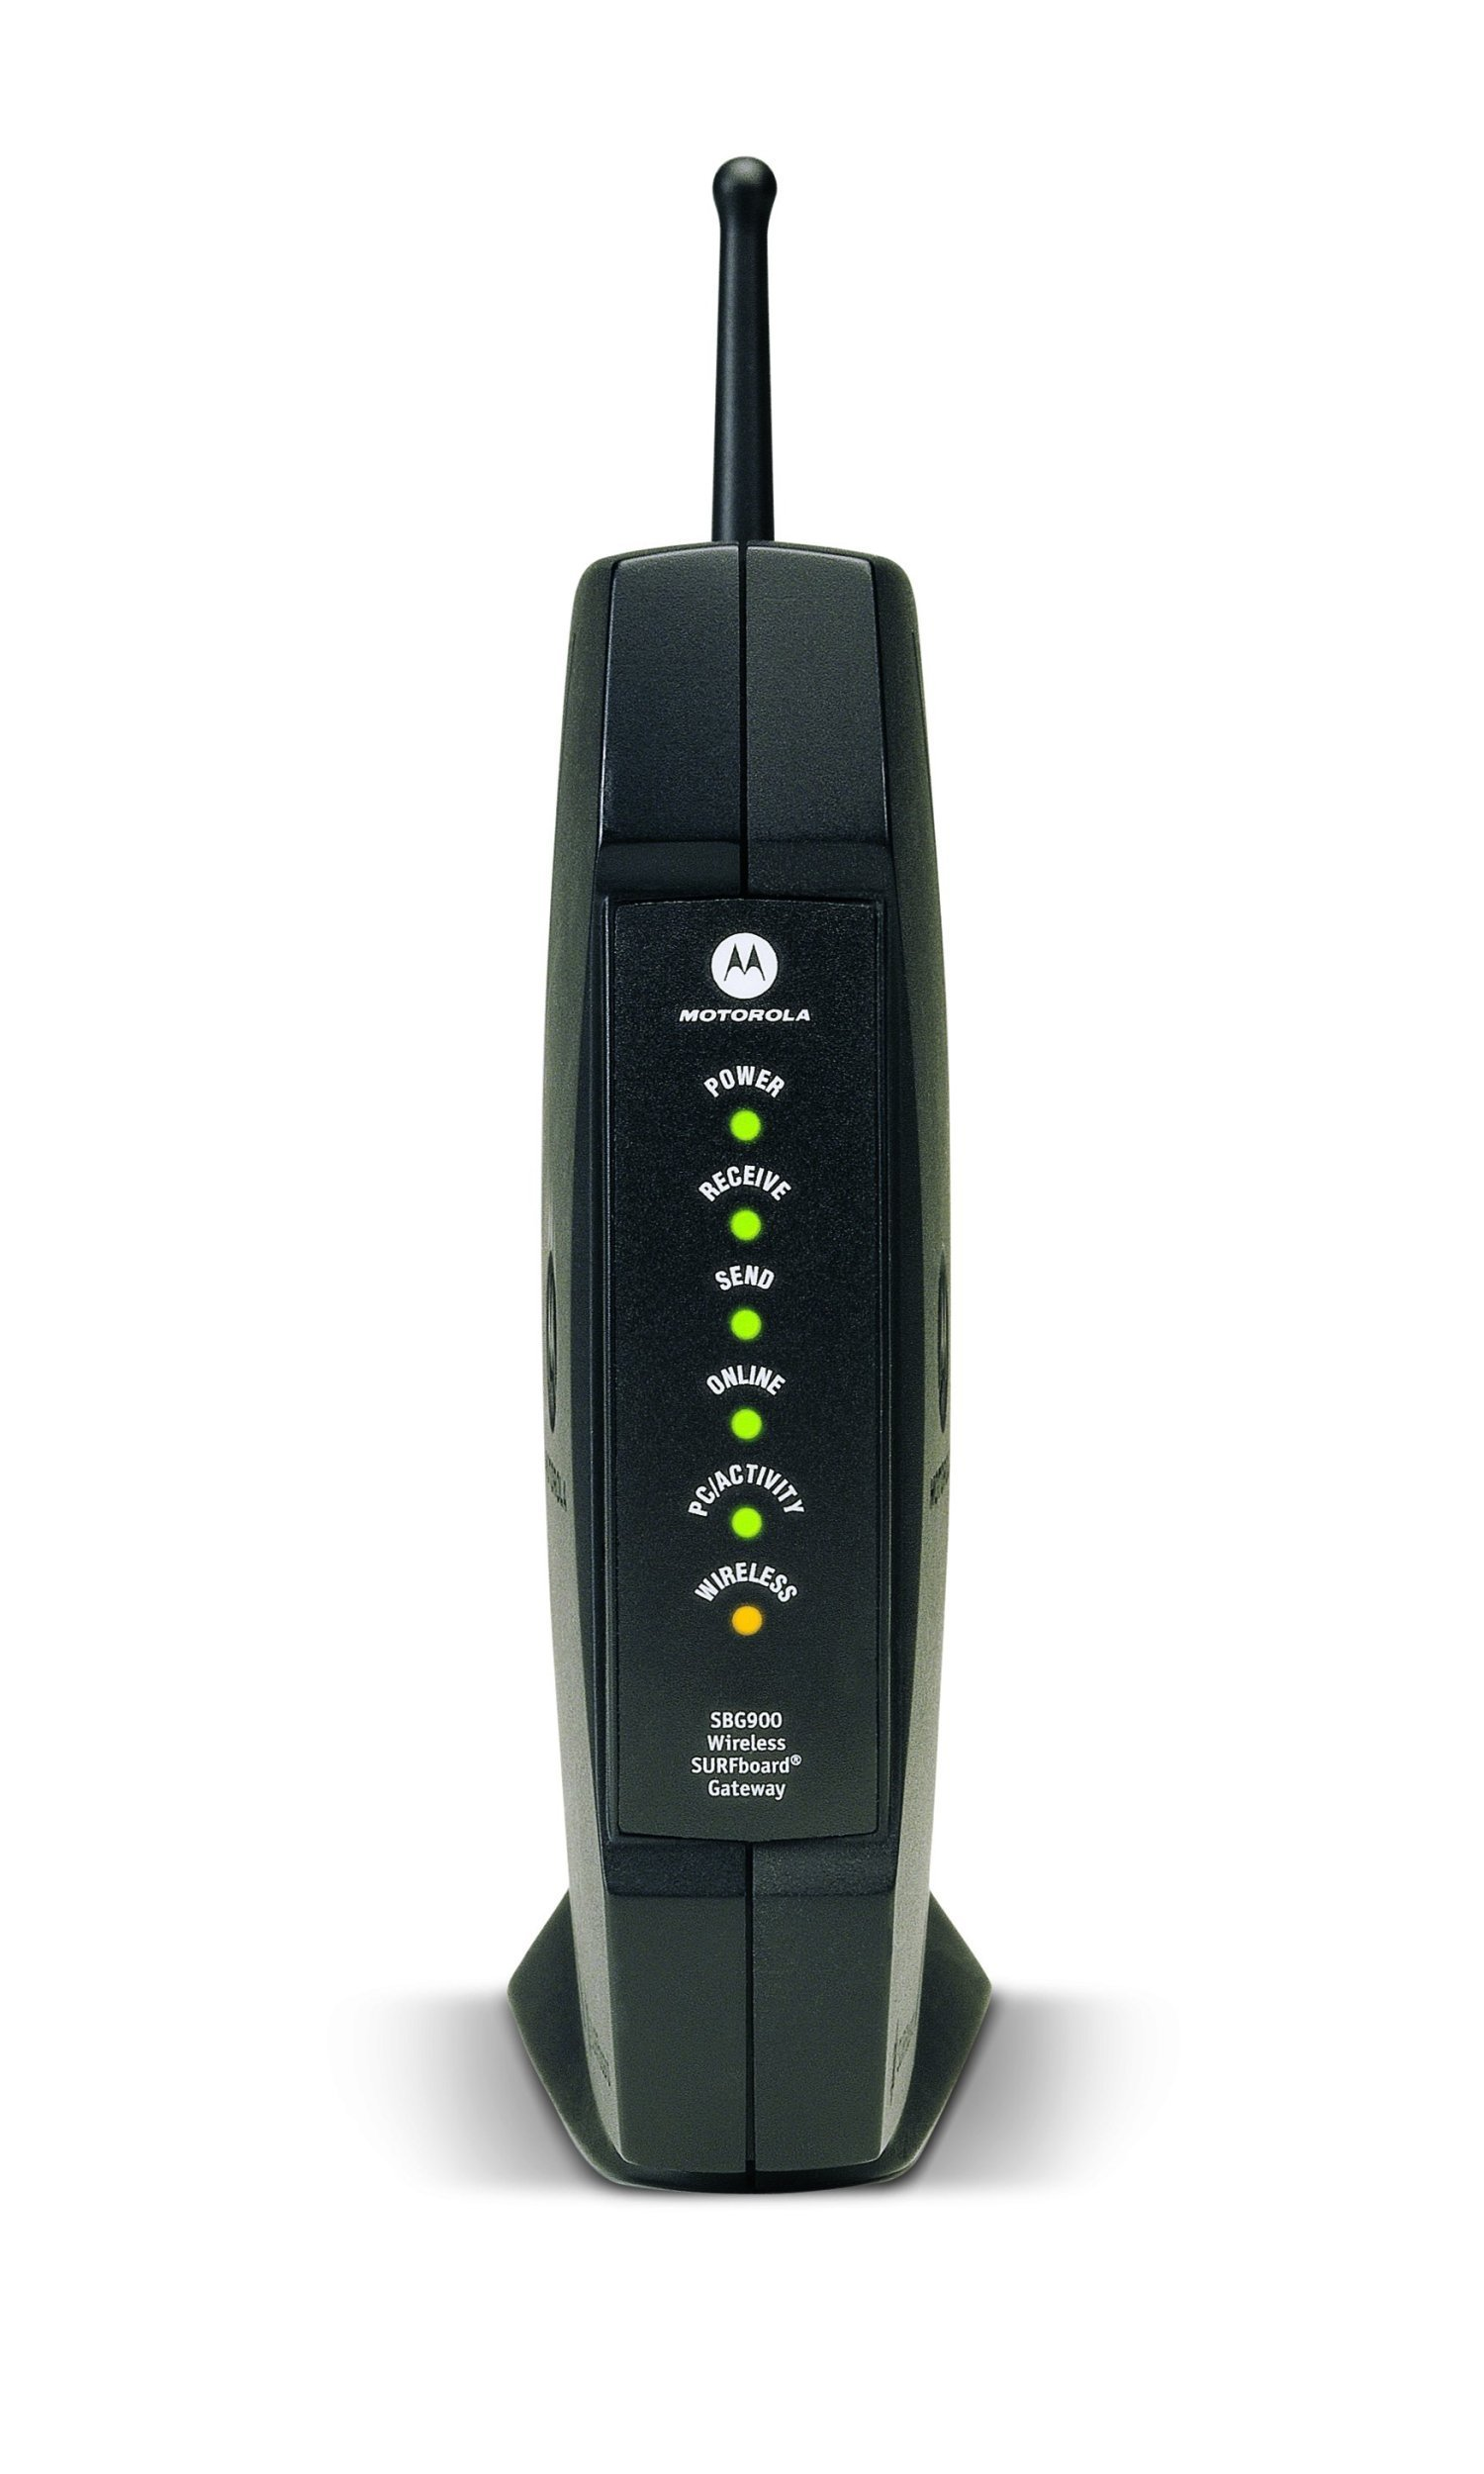 Motorola SURFboard SBG900 DOCSIS 2.0 Wireless Cable Modem Gateway (Black) by Motorola